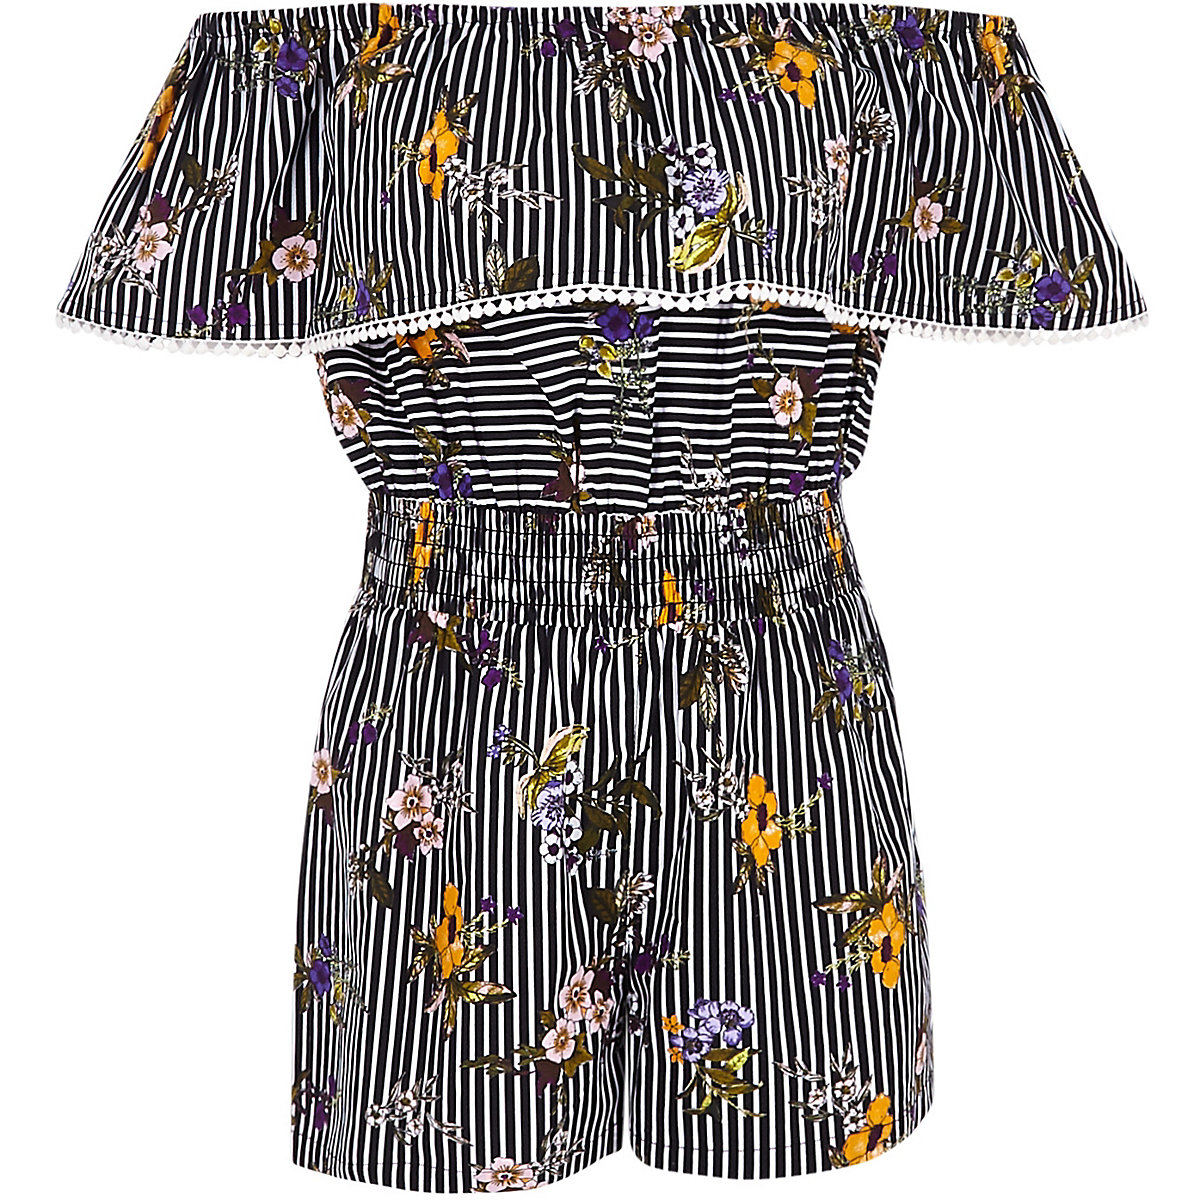 62f4f71cdb1 Girls stripe and floral bardot playsuit - Playsuits   Jumpsuits - Sale -  girls